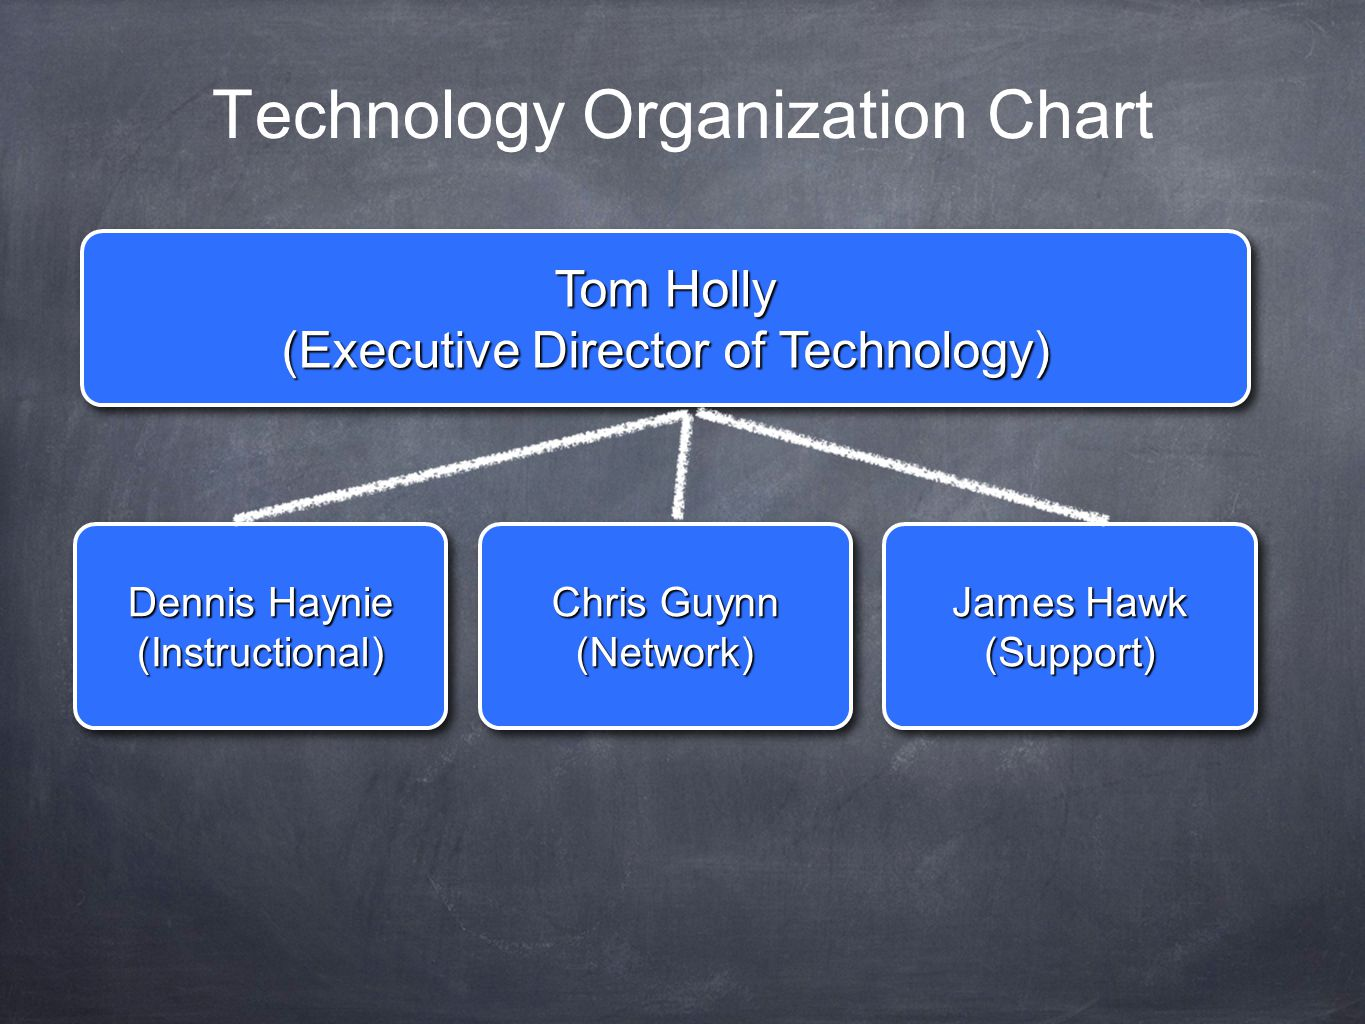 Technology Organization Chart Tom Holly (Executive Director of Technology) Tom Holly (Executive Director of Technology) Dennis Haynie (Instructional) (Instructional) Chris Guynn (Network) (Network) James Hawk (Support) (Support)